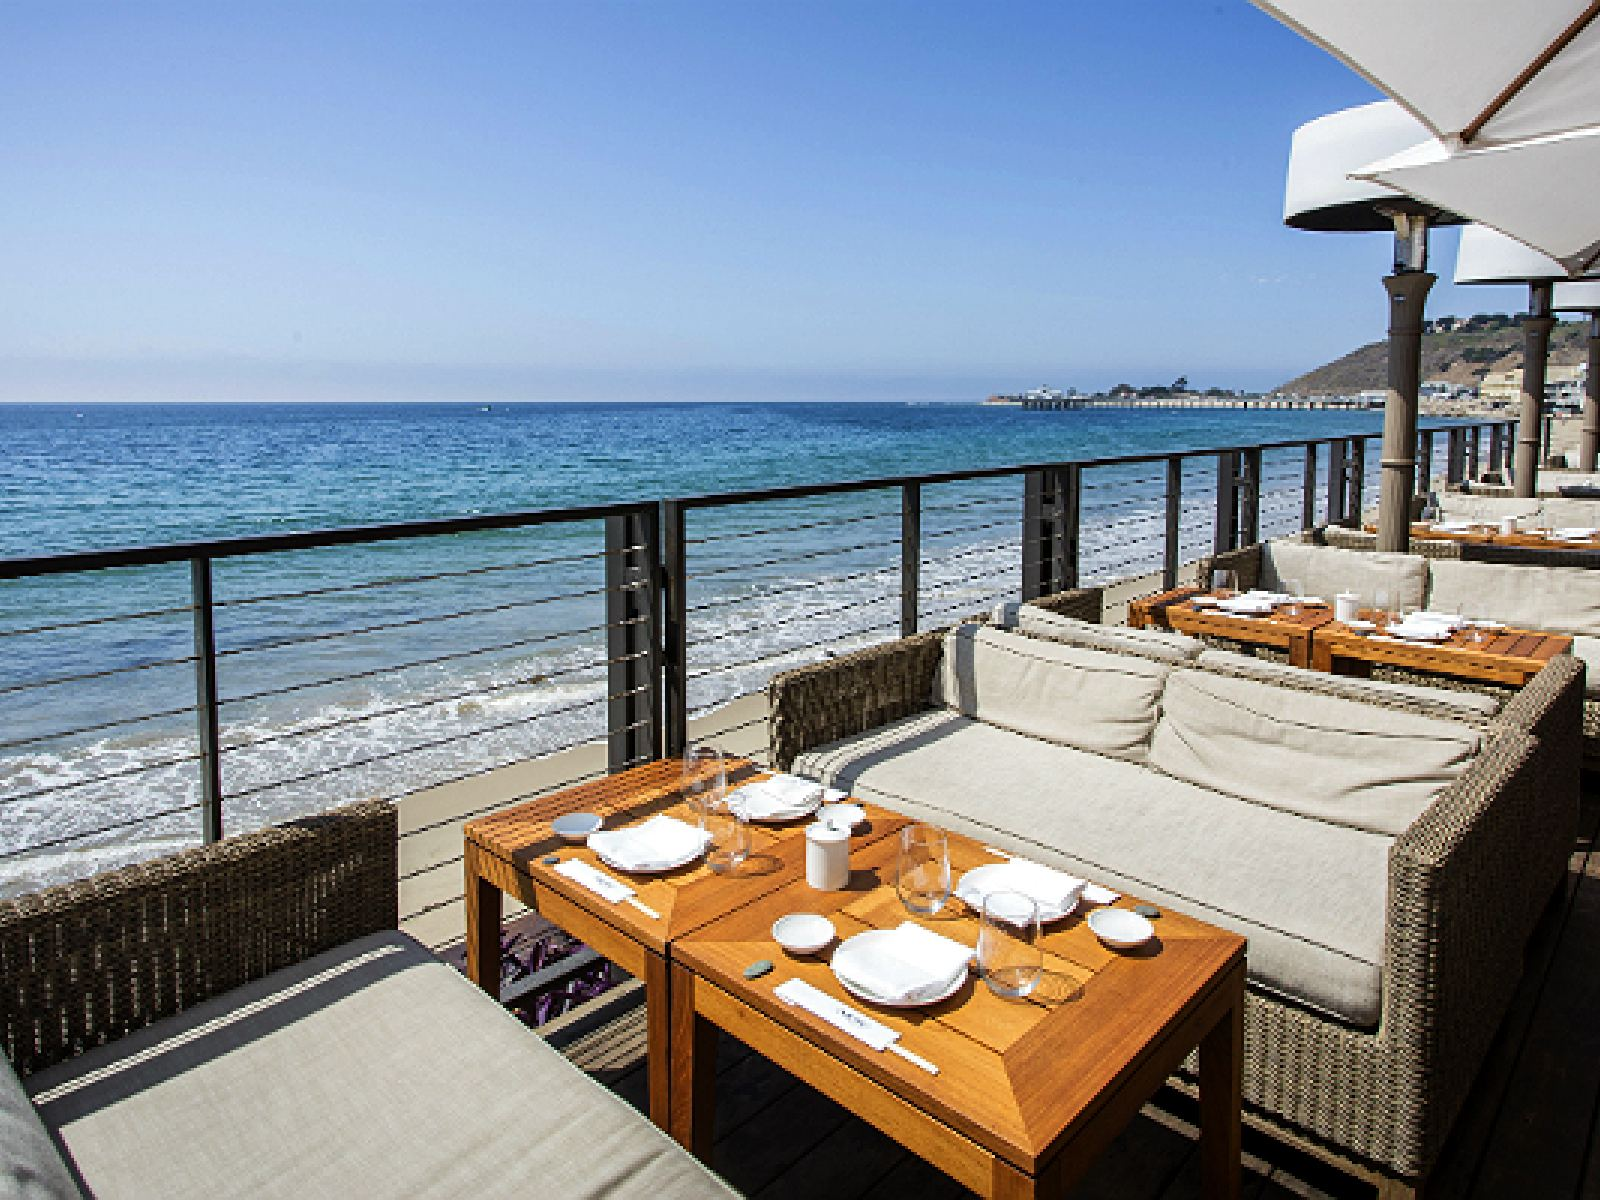 The Best Ocean View Restaurants On Westside Of L A